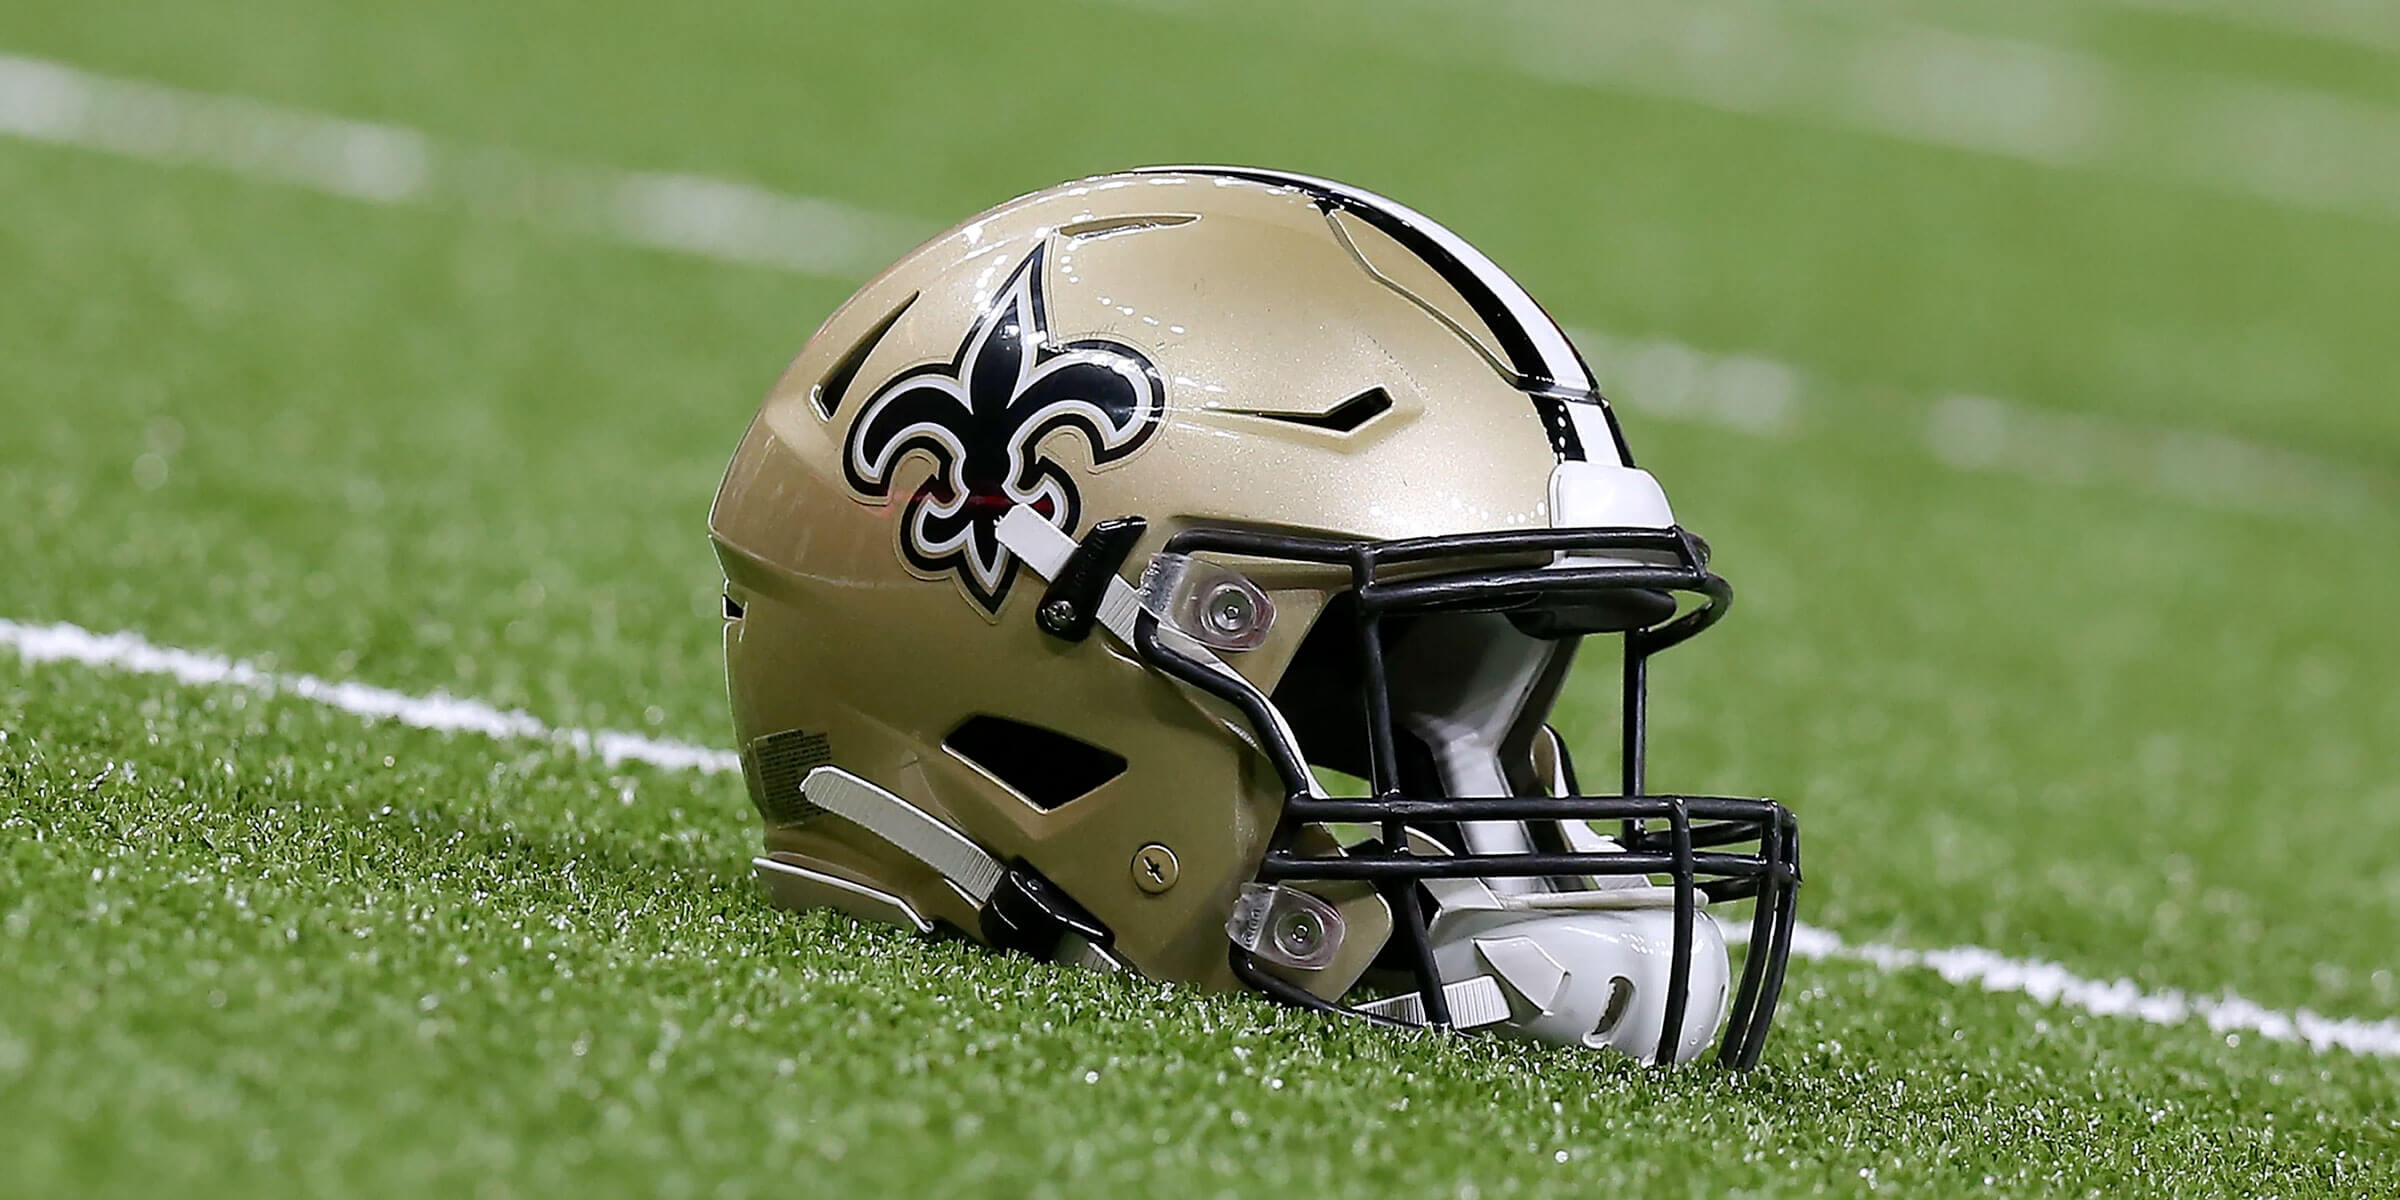 The New Orleans Saints have decided to make hometown Dixie Brewing Company their headquarters for the upcoming NFL Draft on April 23rd.